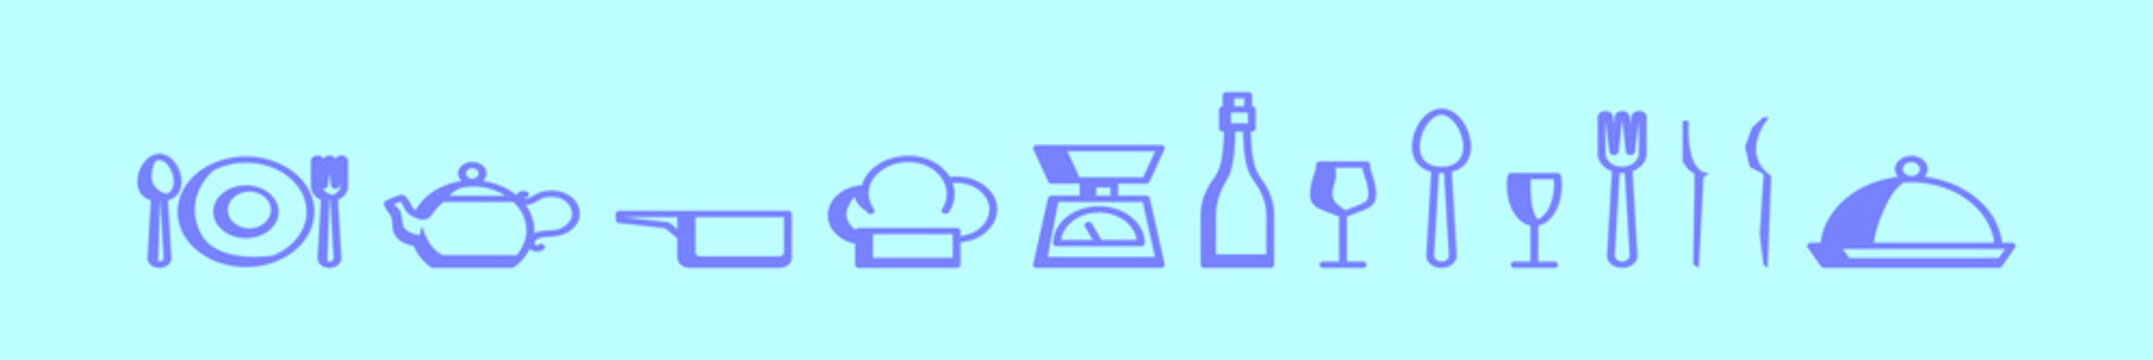 set of dining cartoon icon design template with various models. vector illustration isolated on blue background